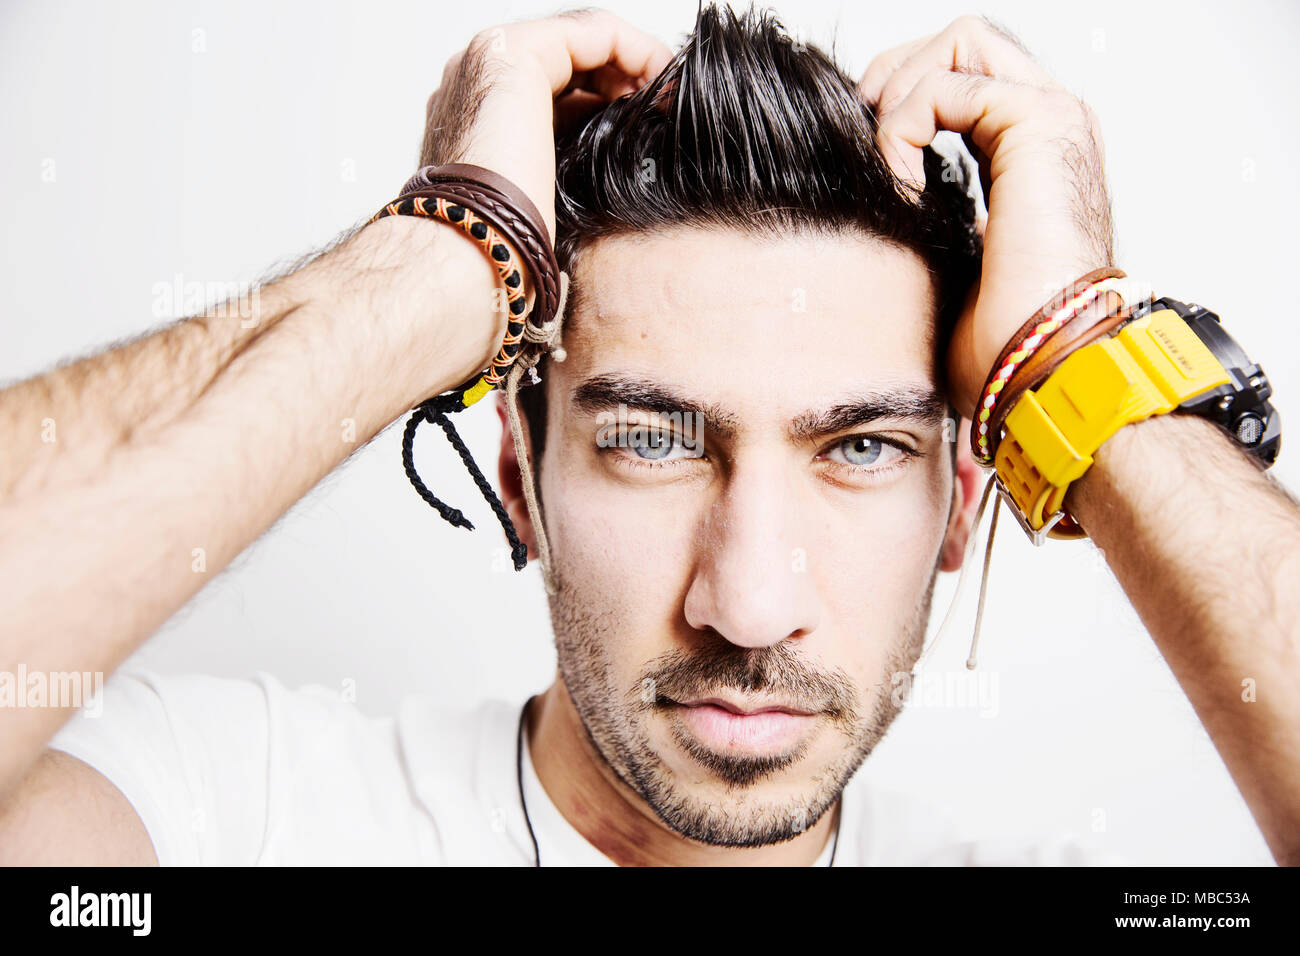 Young man, sporty watch and friendship straps, grabs his hair, portrait, studio shot - Stock Image